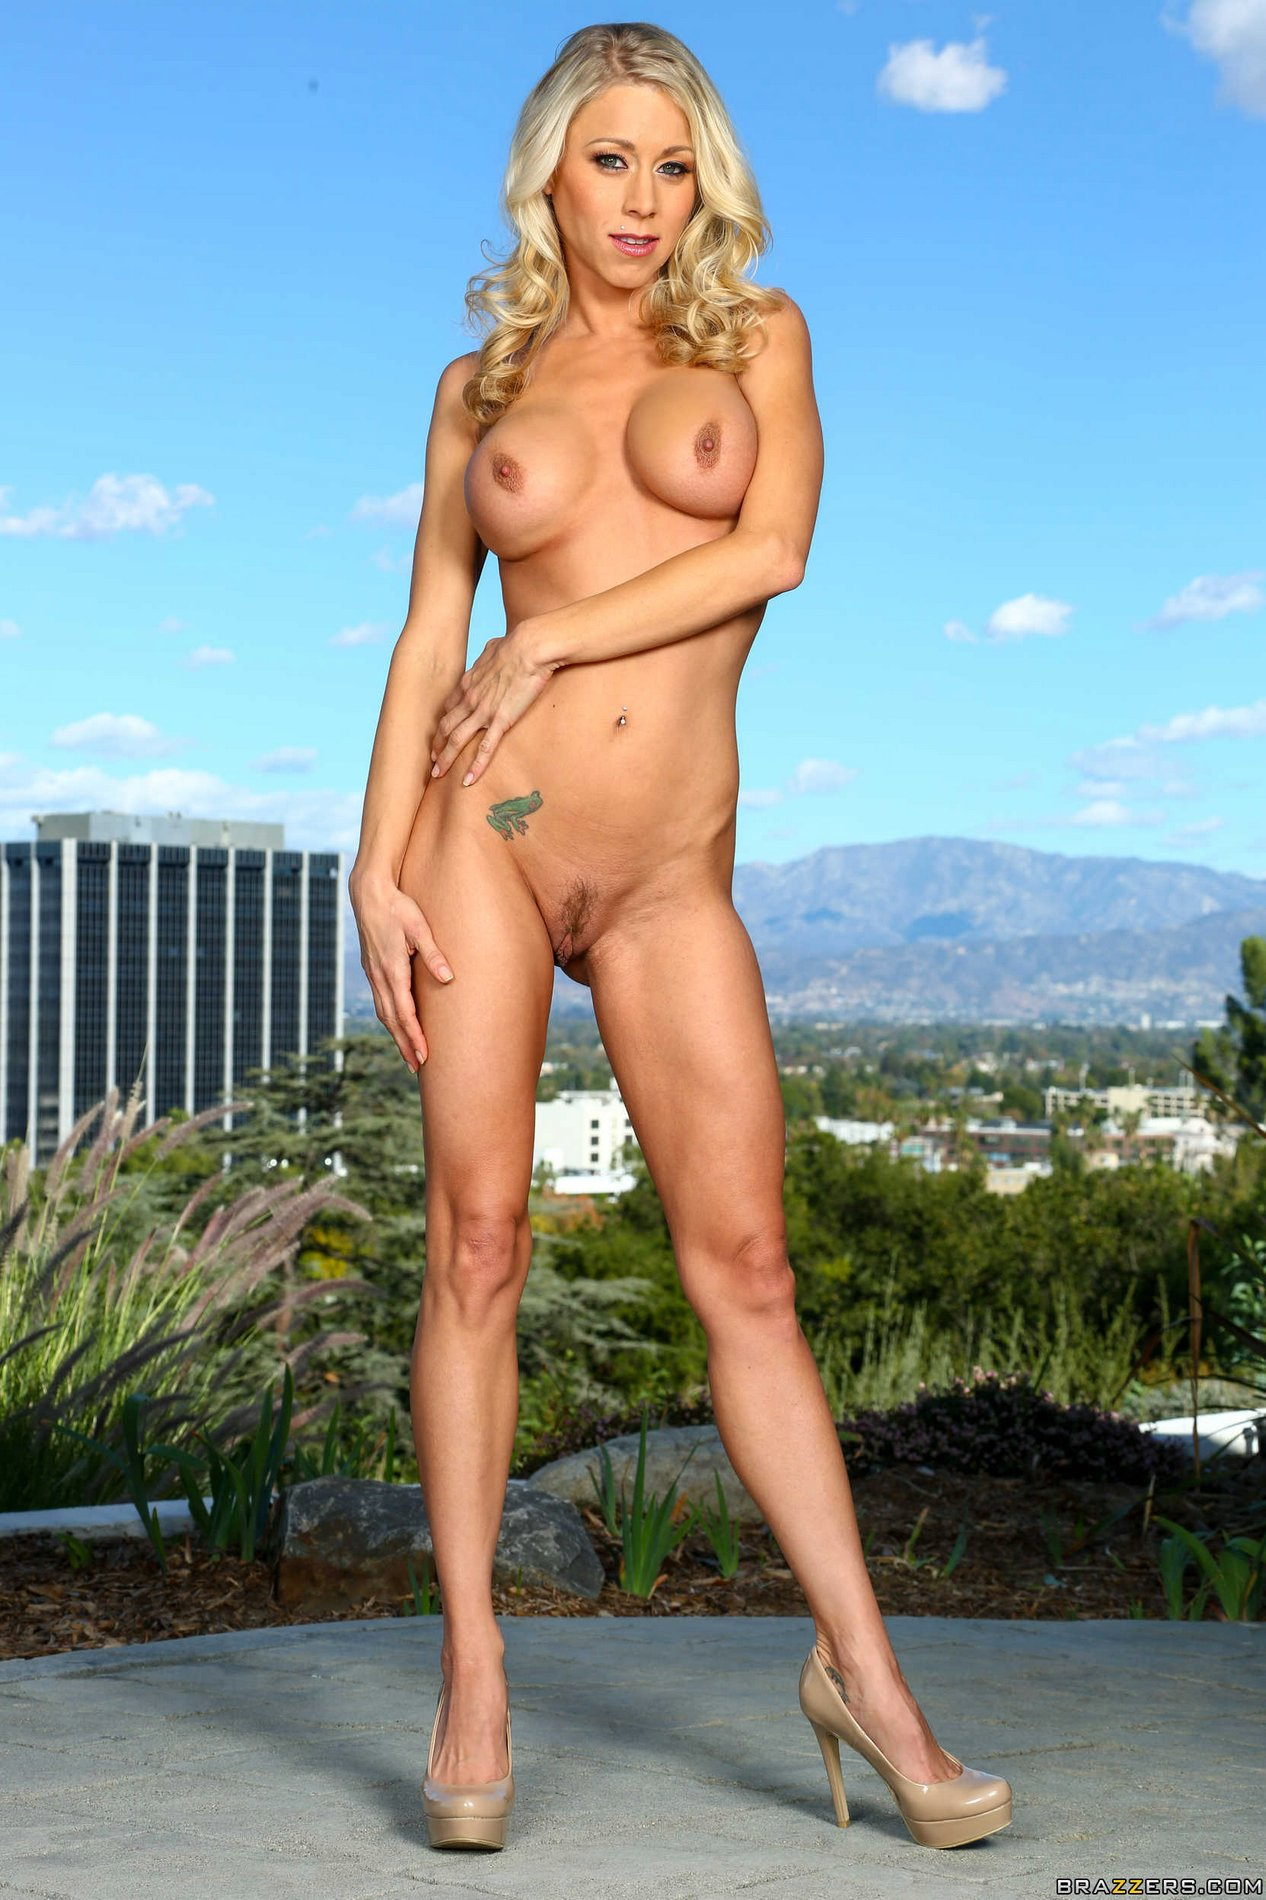 watch katie morgan